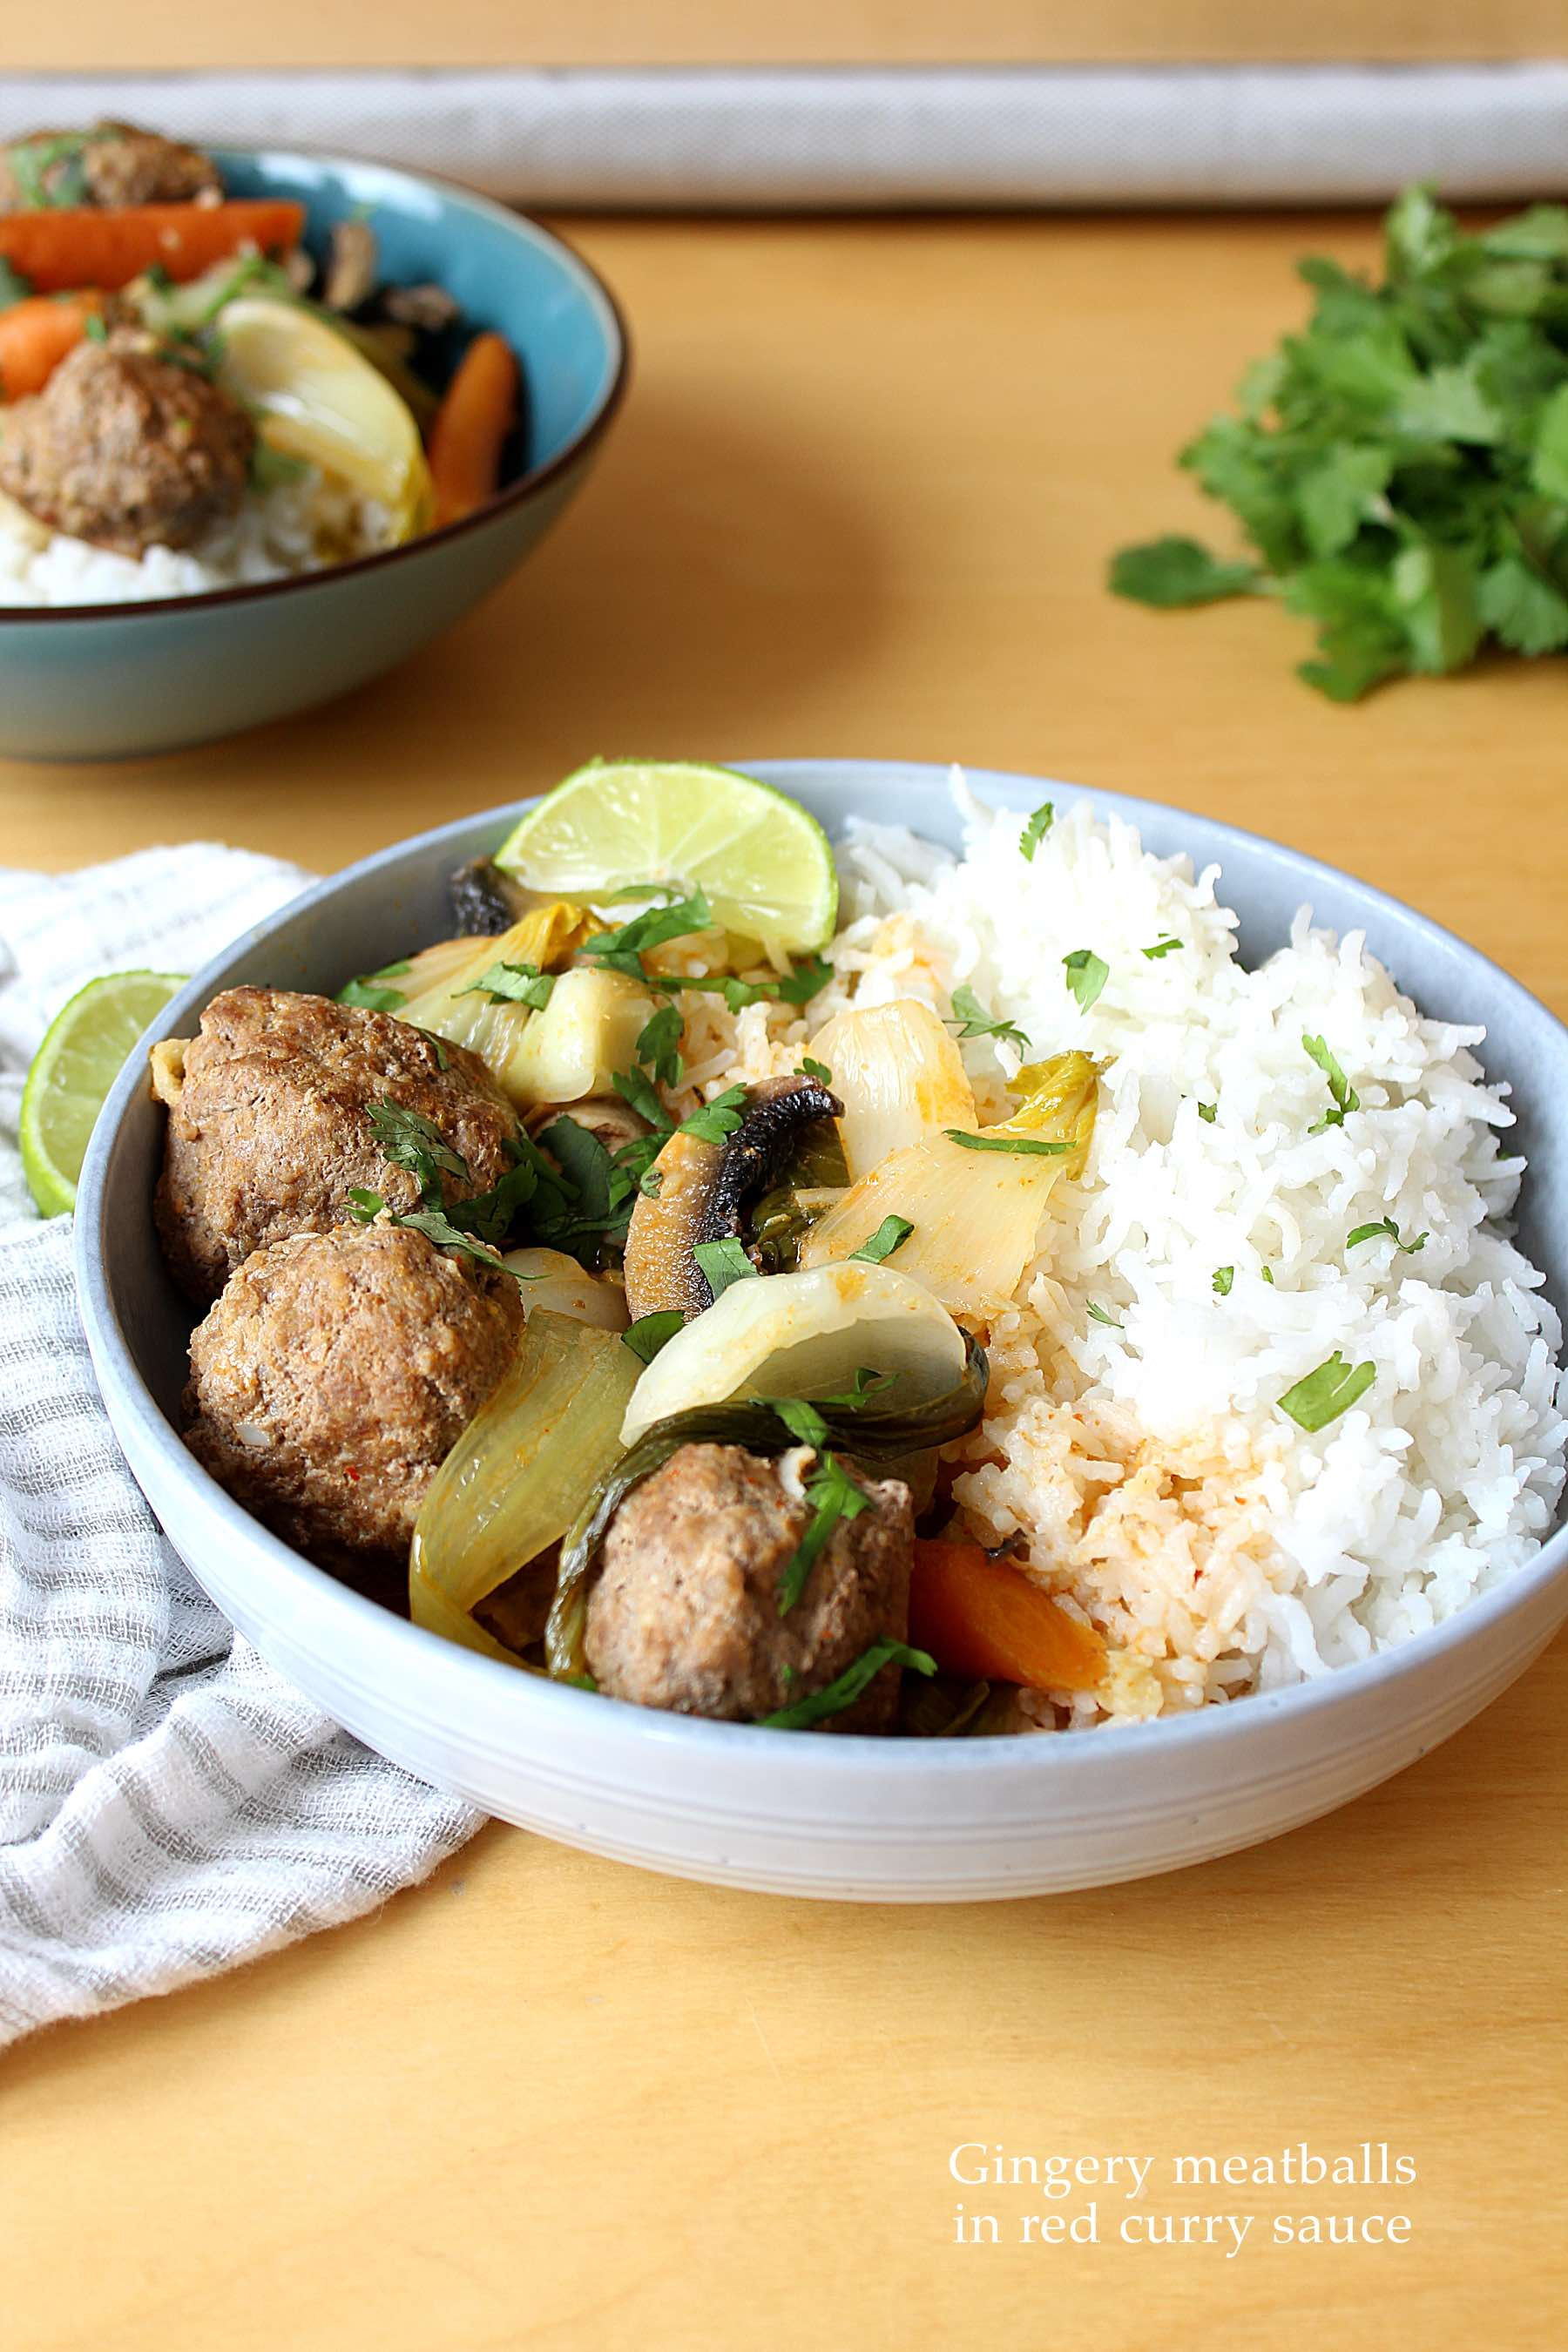 Gingery meatballs in red curry sauce